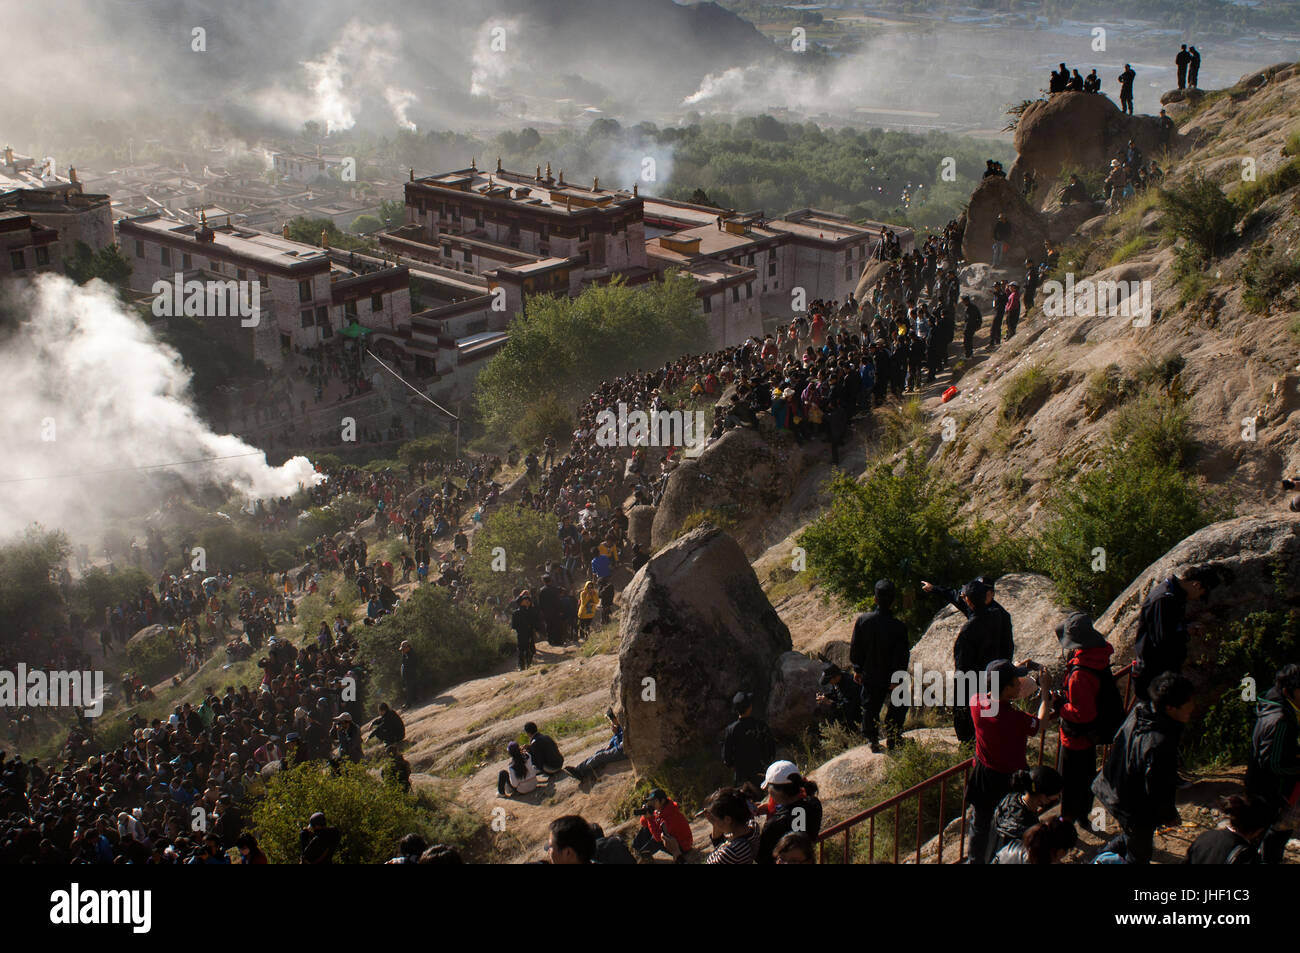 Around the Drepung monastery during the Yogurt Festival or also called Shoton Festival, Lhasa, Tibet. - Stock Image